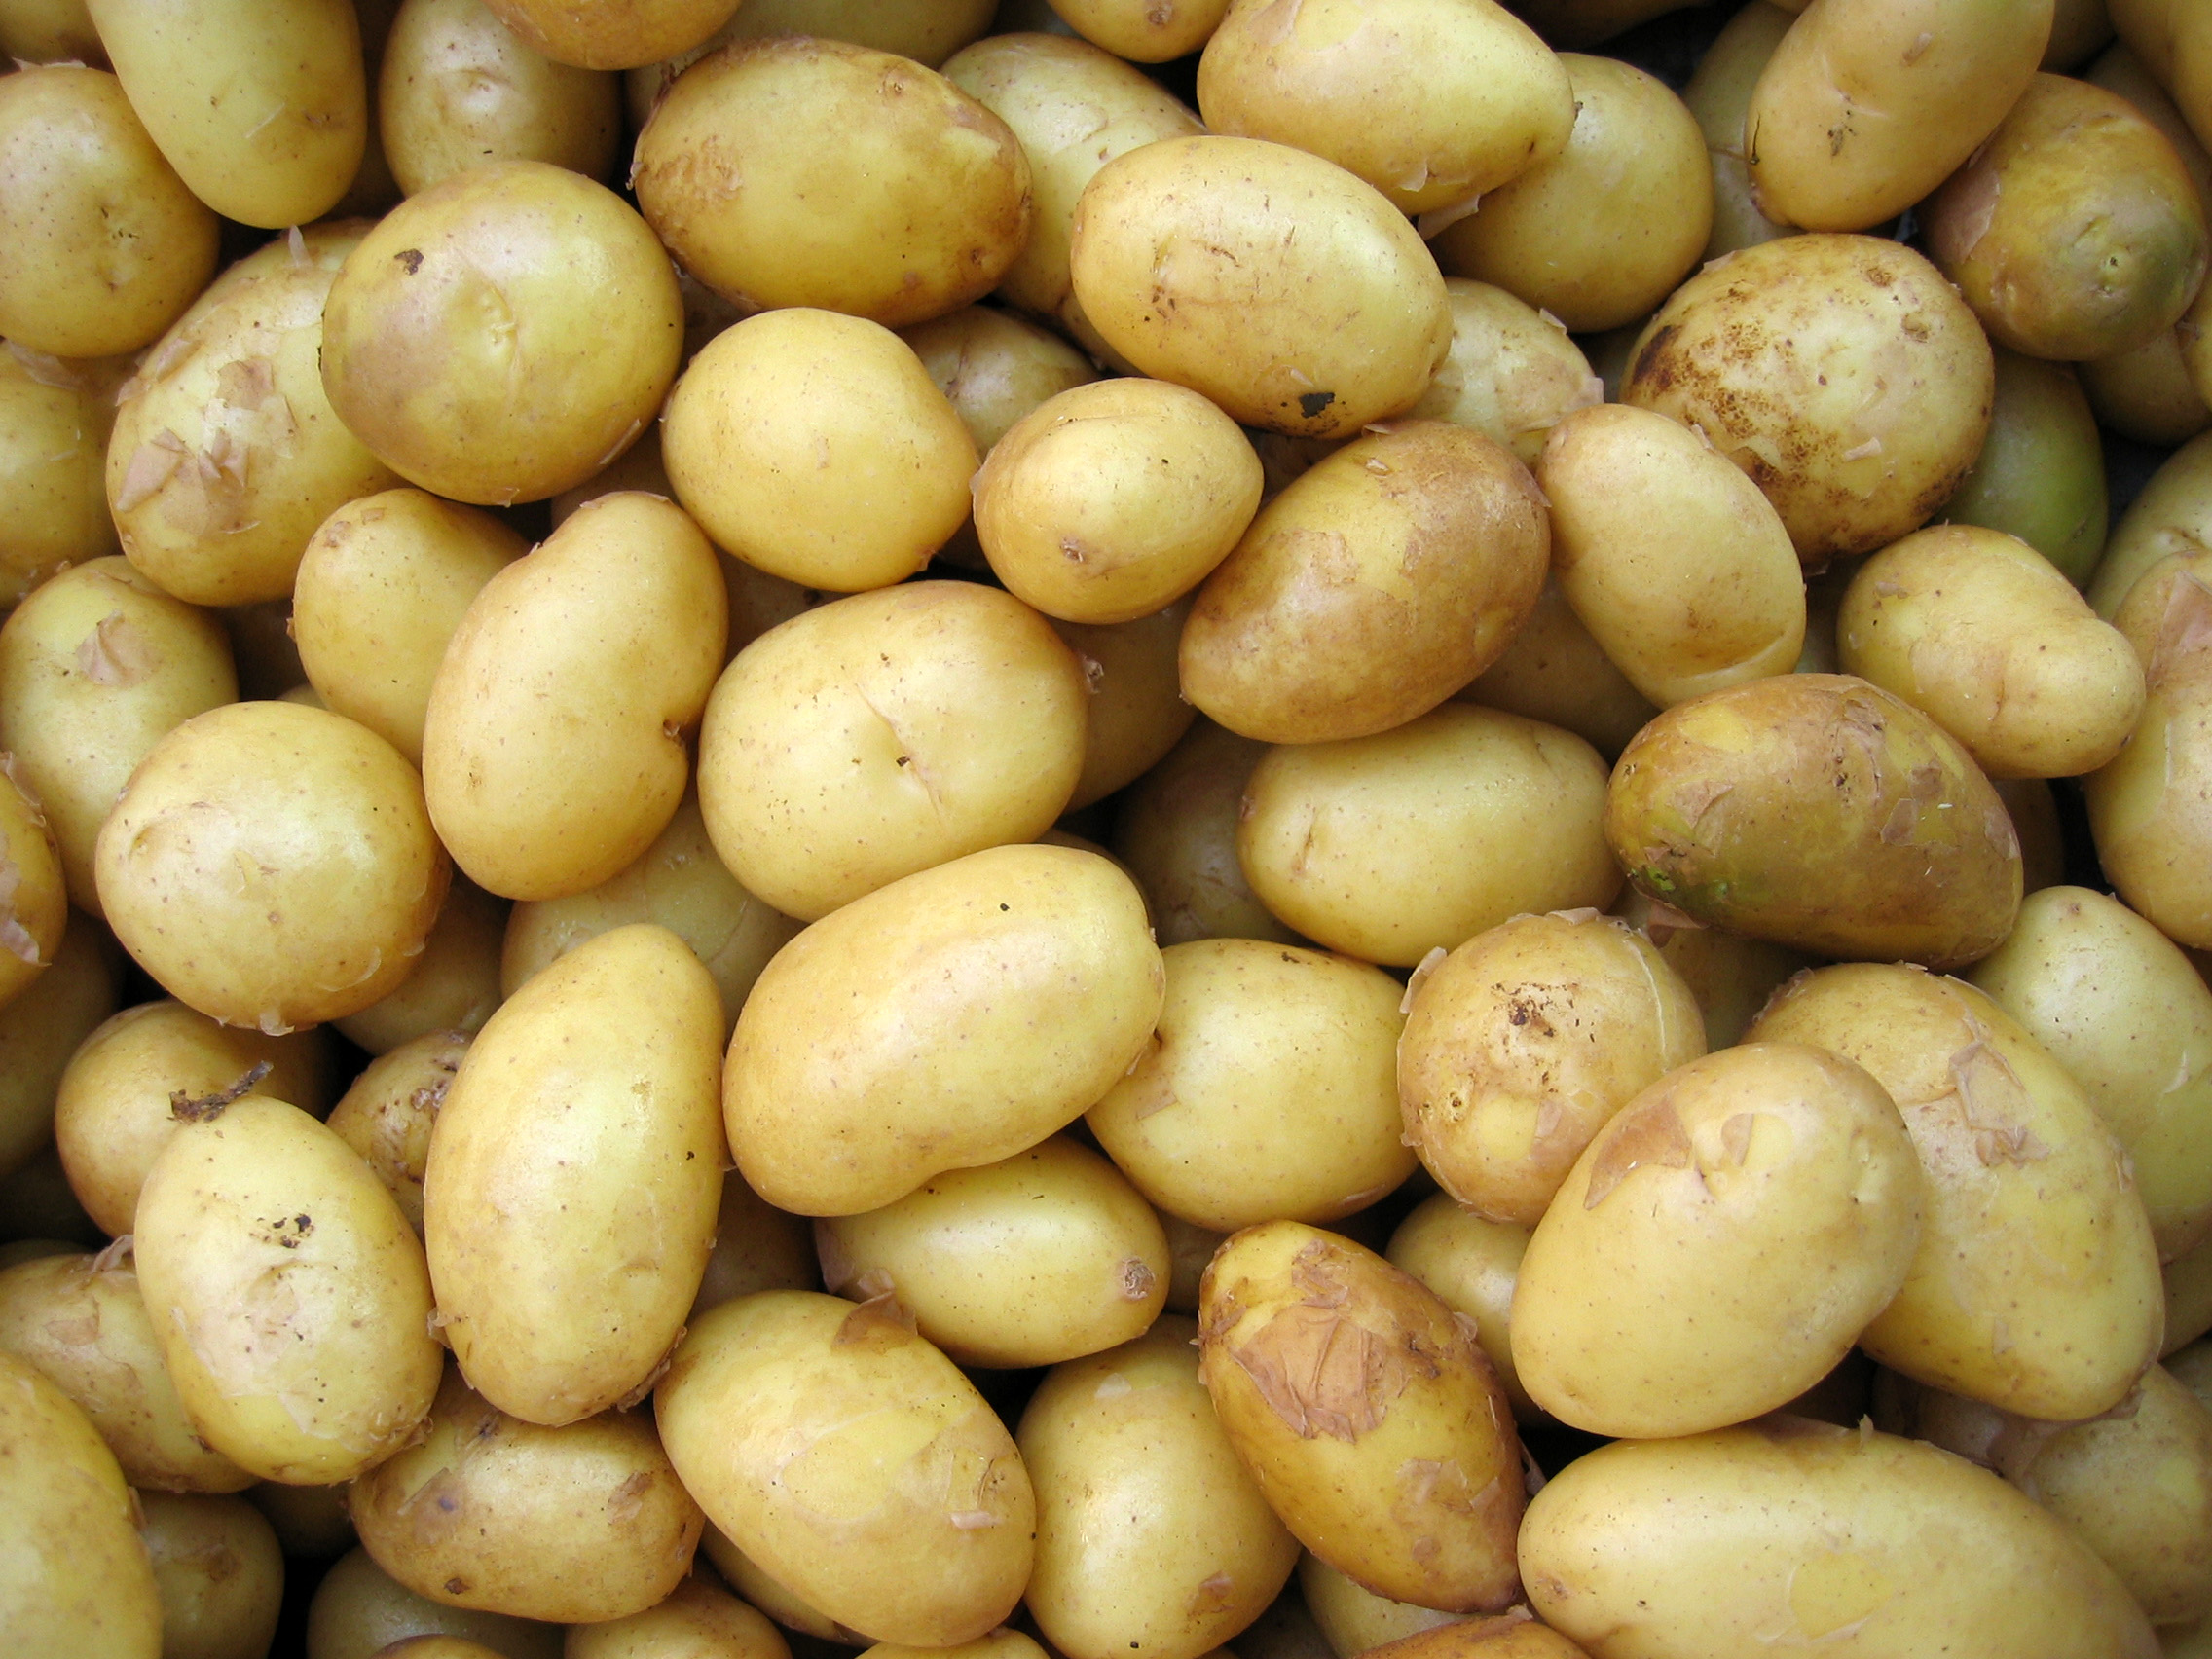 potatoes - Conventional potatoes had more pesticide residues by weight than any other crop.One pesticide in particular, chlorpropham, makes up the bulk of pesticides detected on potatoes.